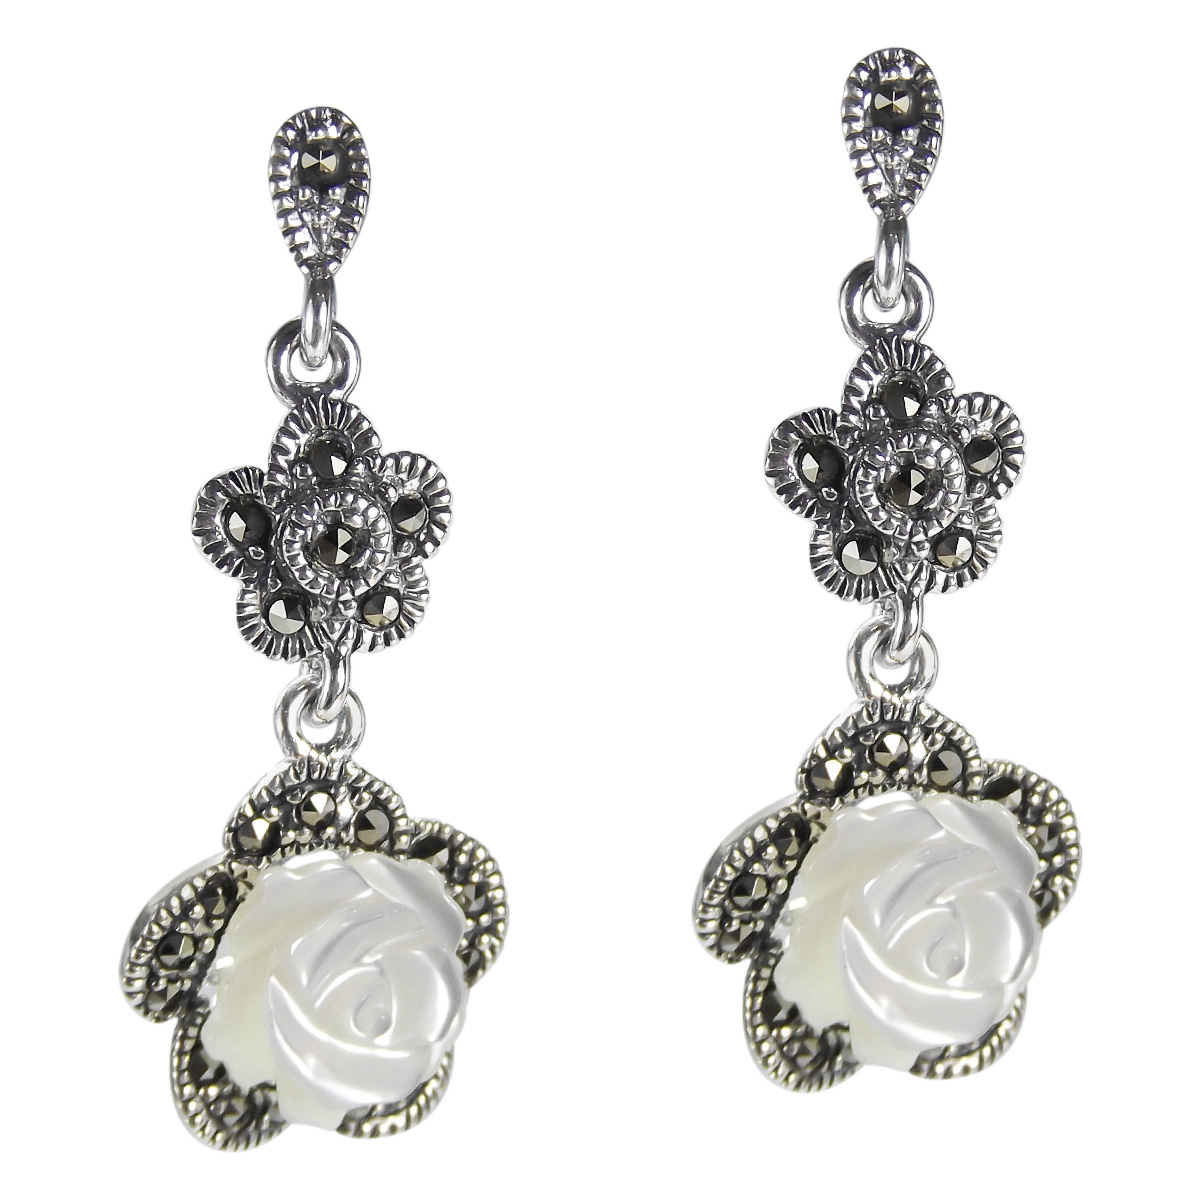 Beautifully Carved Mother Of Pearl Form A Sweet Rose Design Set In Sterling Silver These Earrings Feature Marcasite Stones For Vintage And Sophisticated